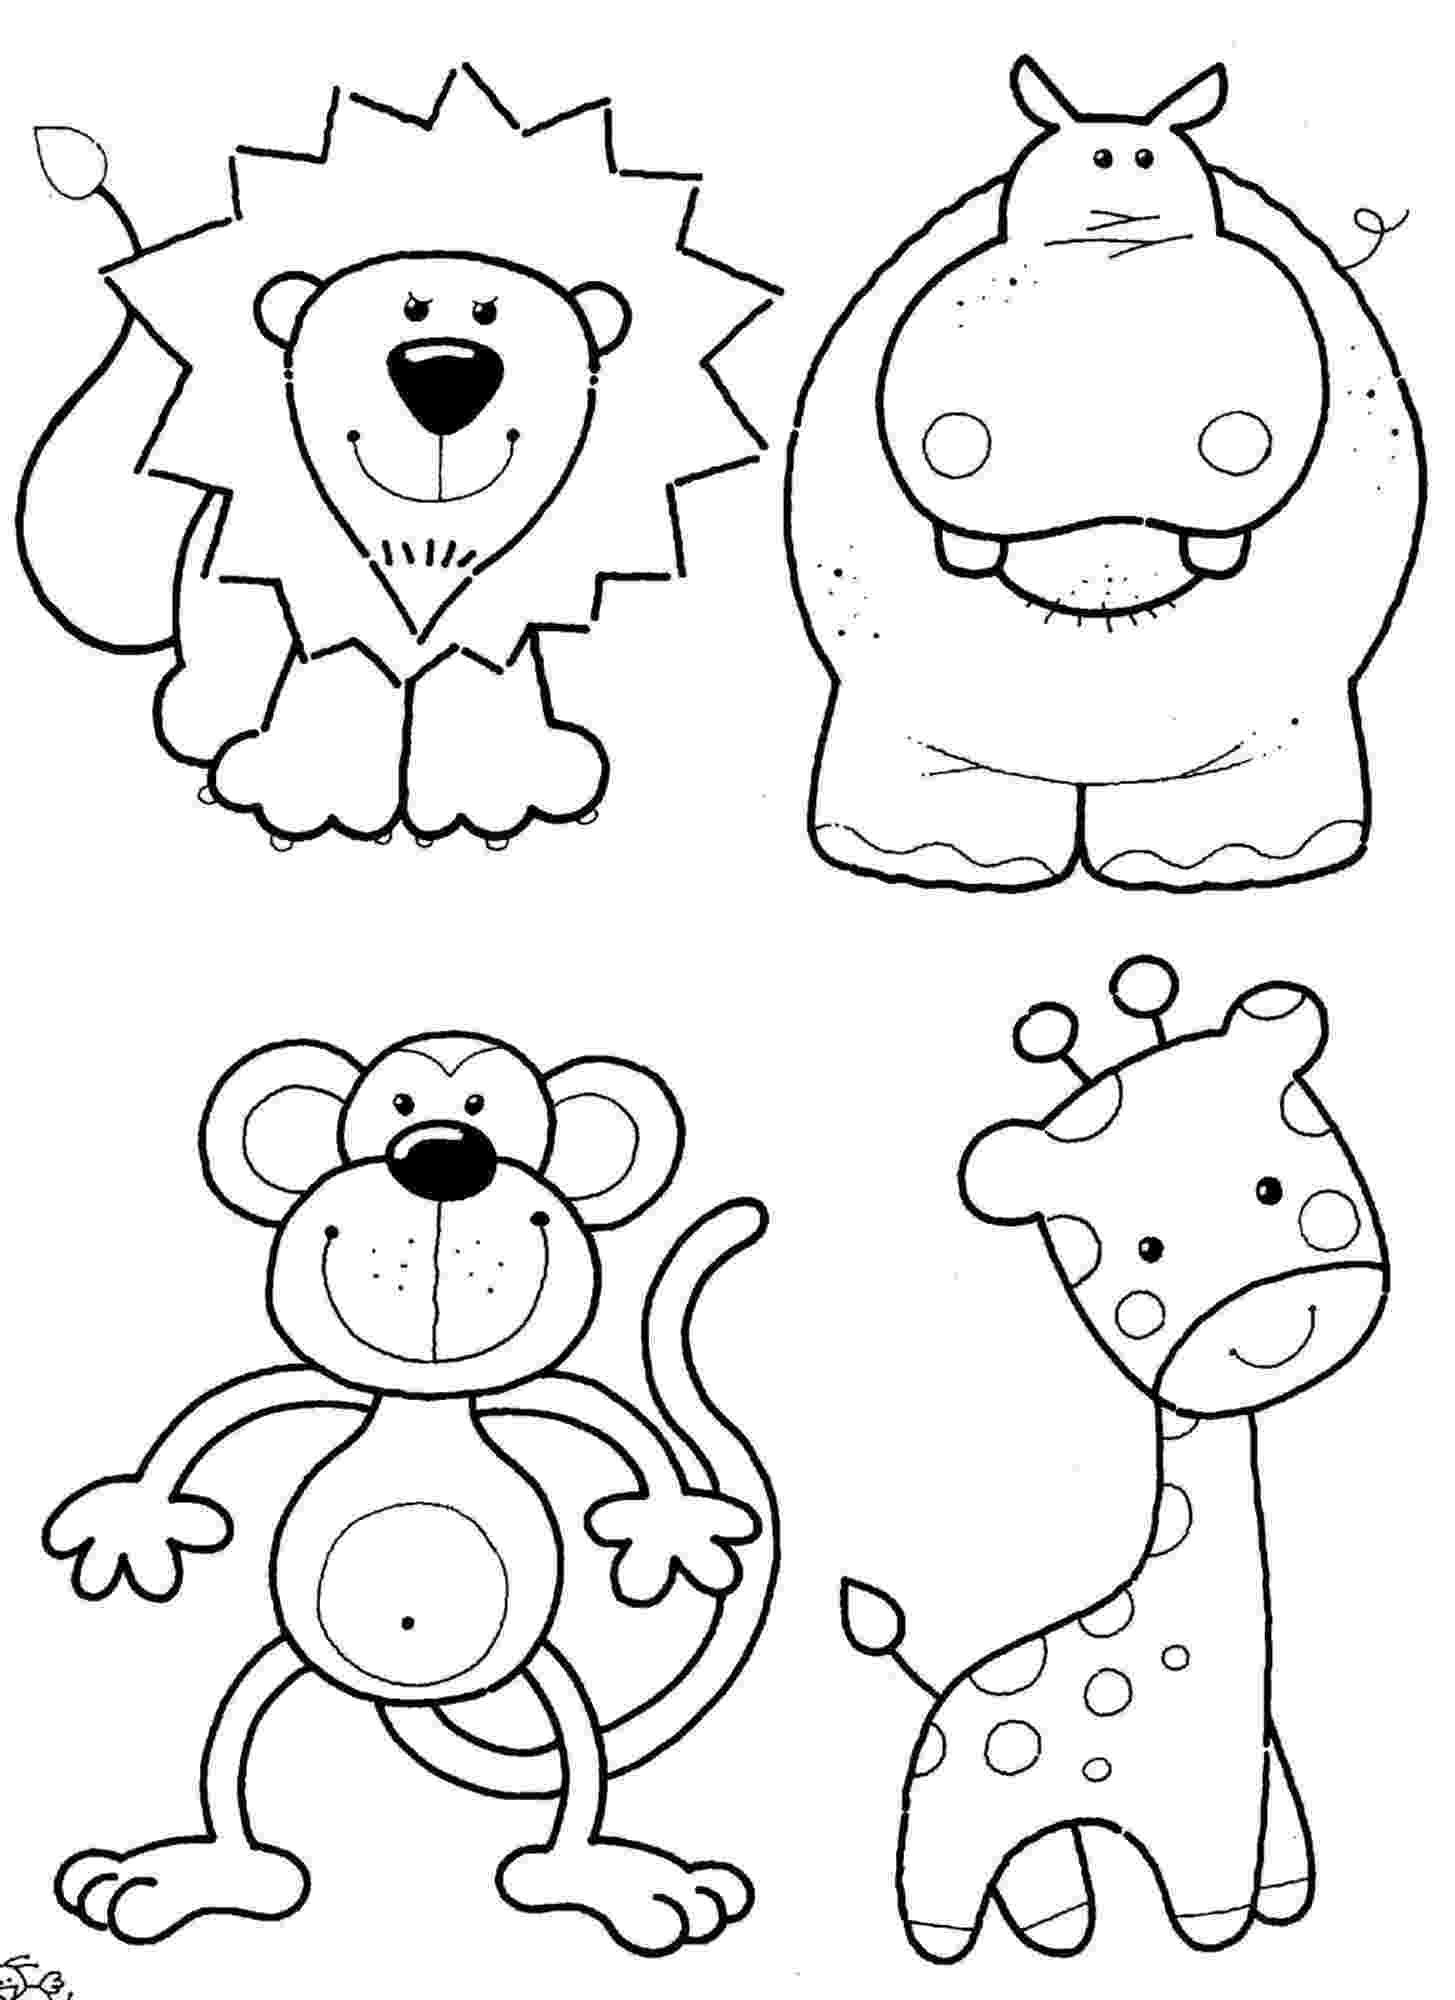 childrens animal colouring books animals madagascar coloring pages for kids printable free colouring books animal childrens